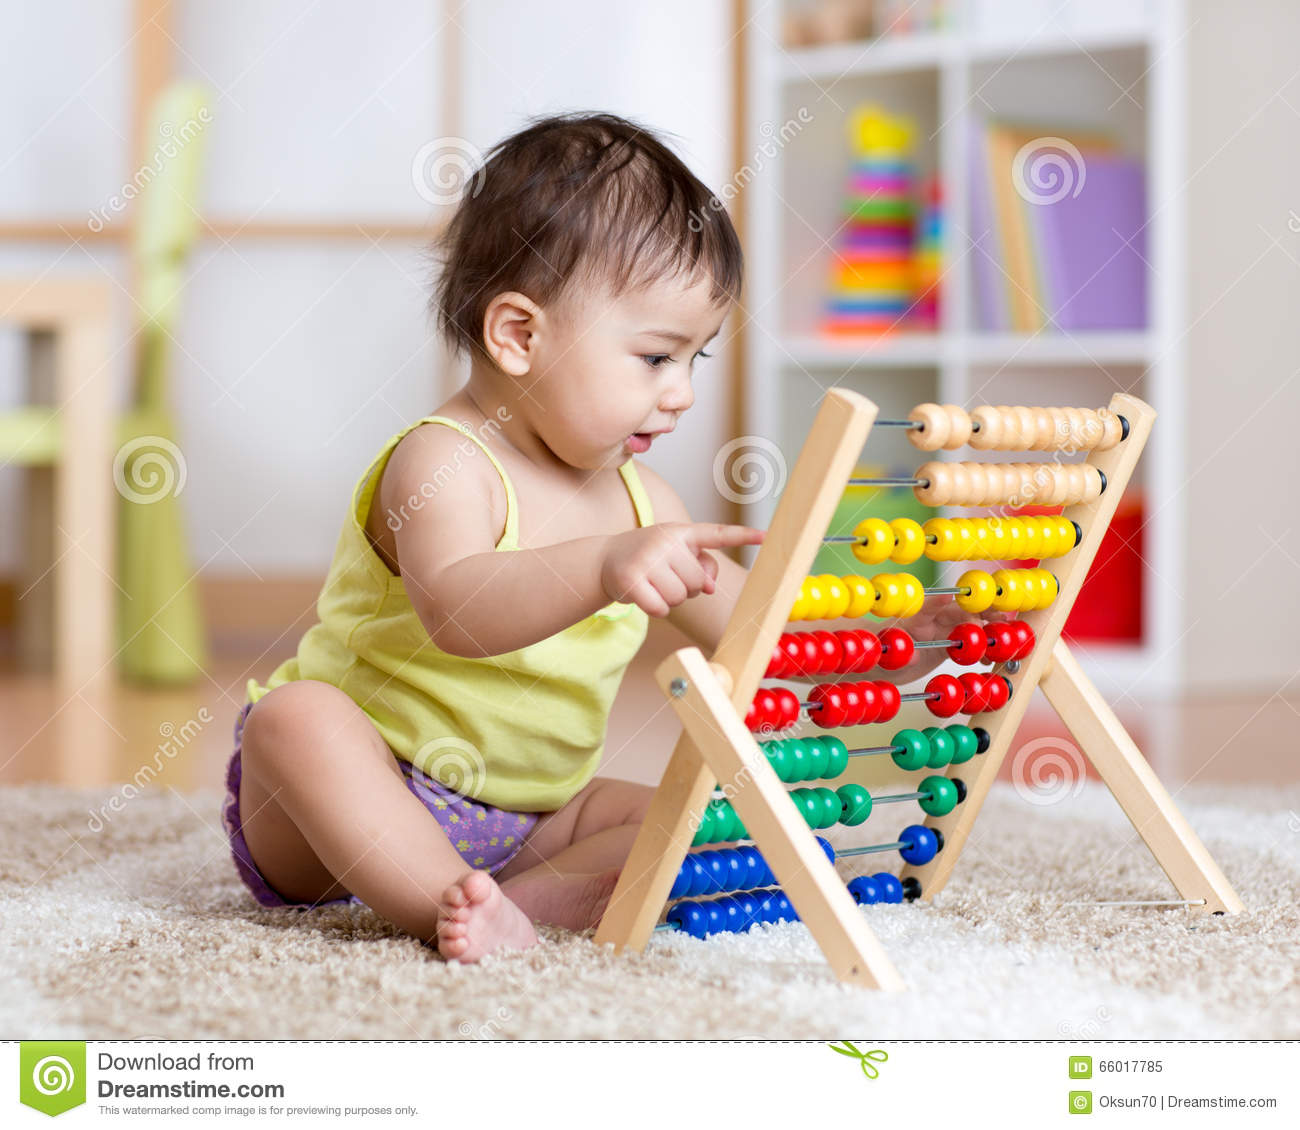 Learning Toys Toddler Girl : Little girl playing with abacus on playground stock photo